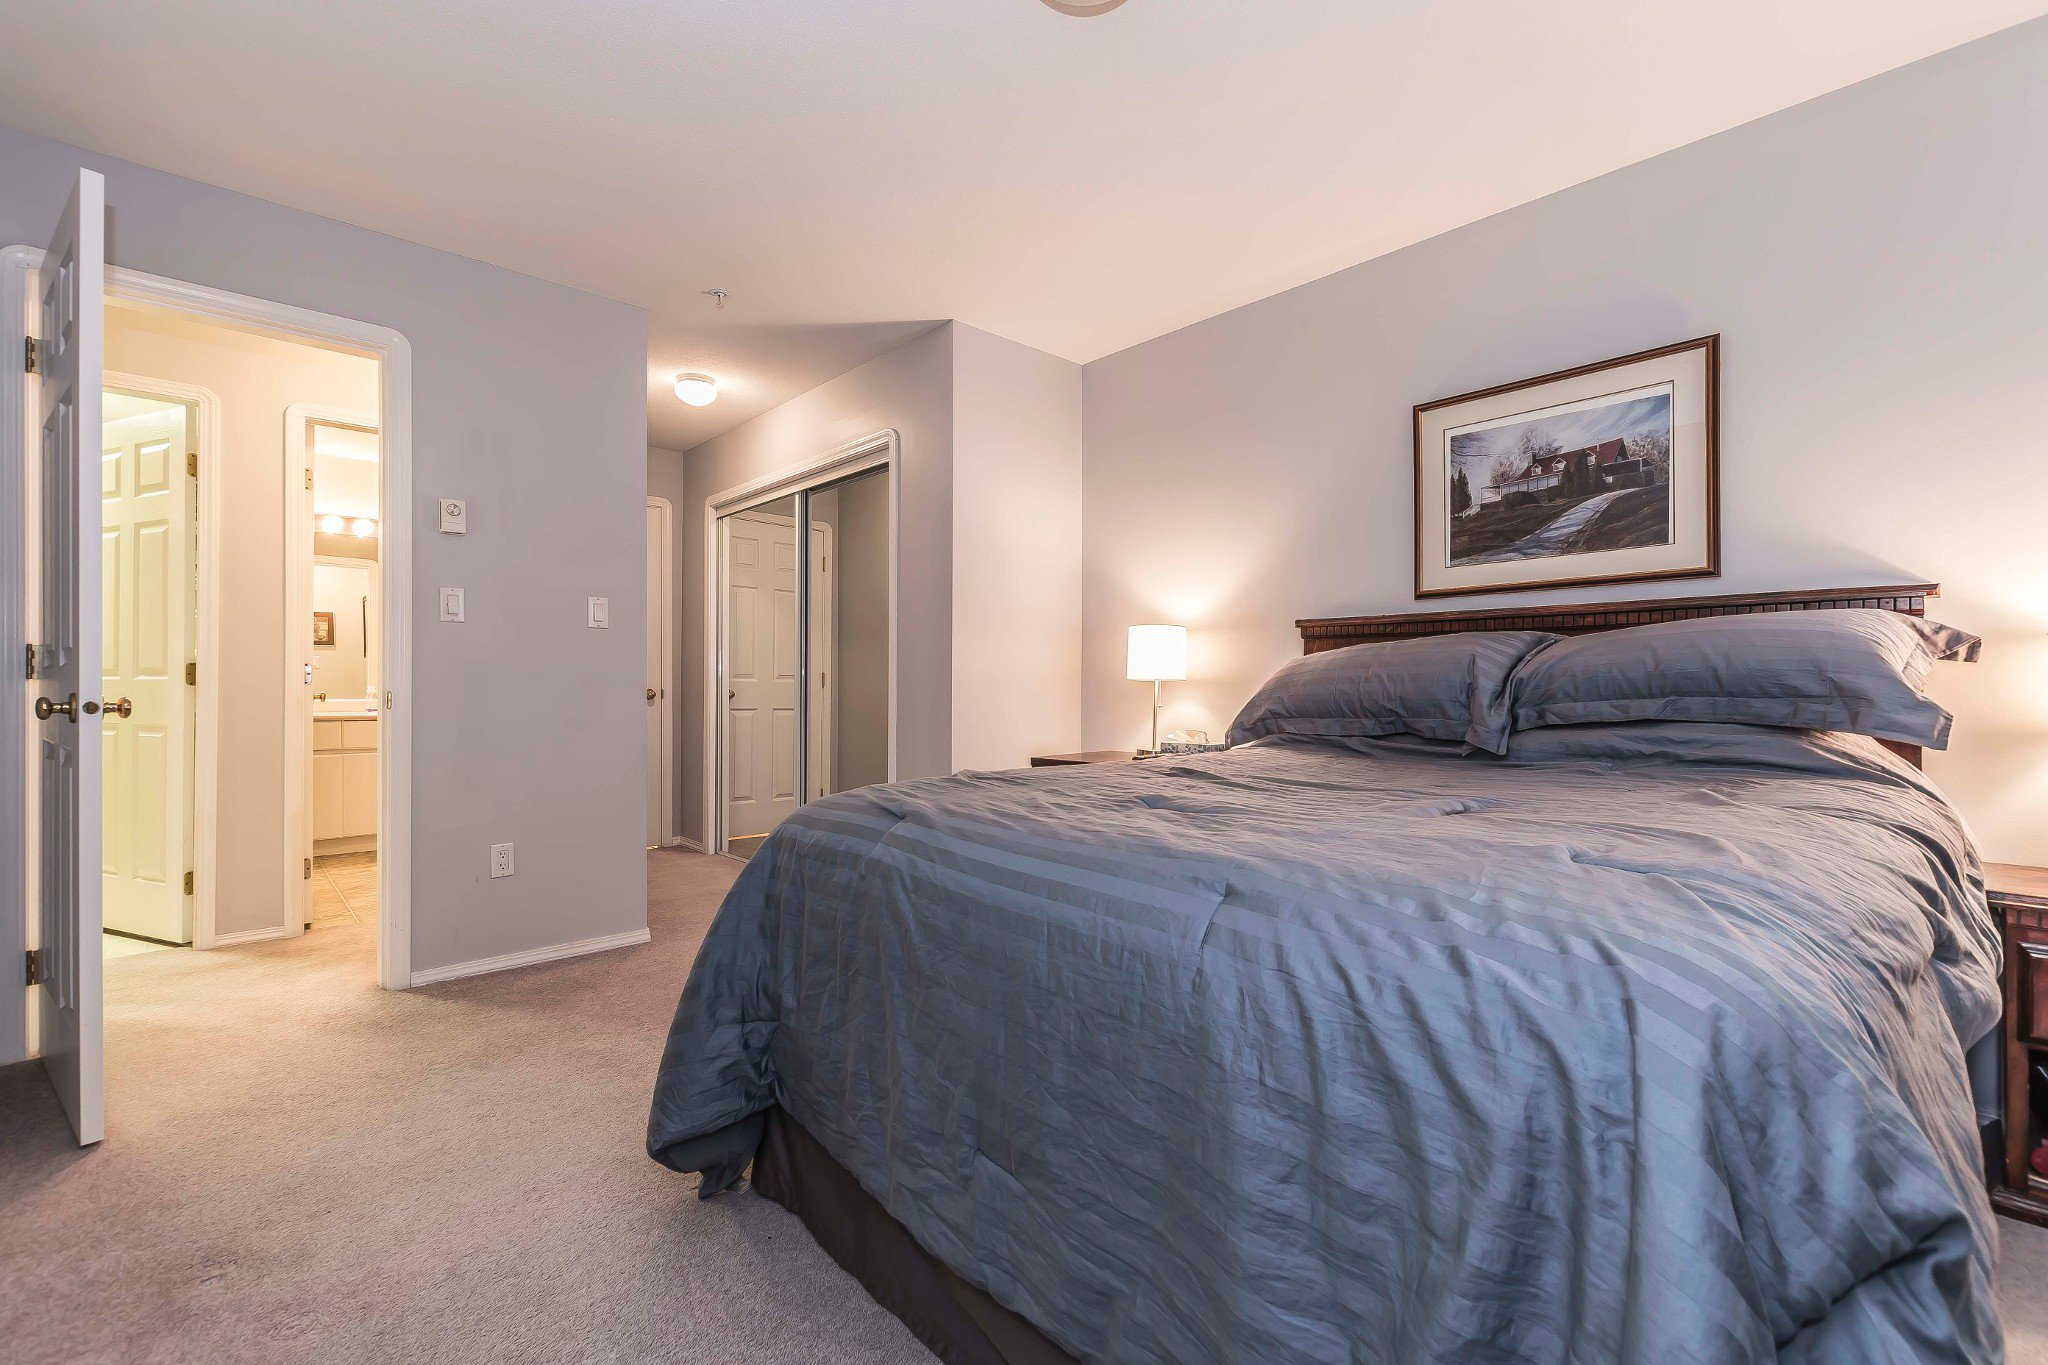 Photo 16: Photos: 210 46693 Yale Road in Chilliwack: Condo for sale : MLS®# r2231167